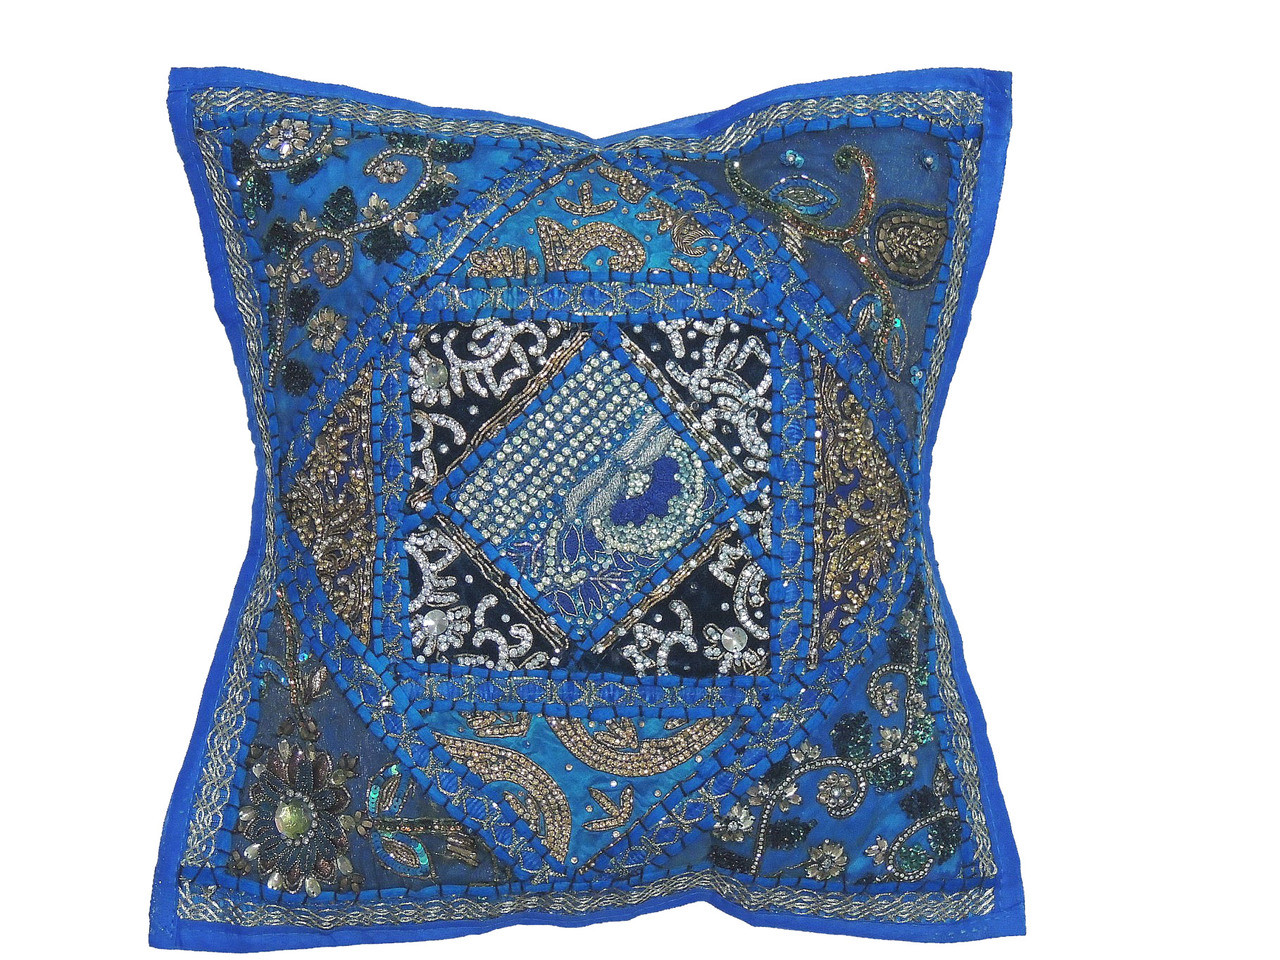 Blue Beaded Throw Pillow : Blue Kundan Decorative Throw Pillow - Fancy Beaded Embellished Cushion Cover 16